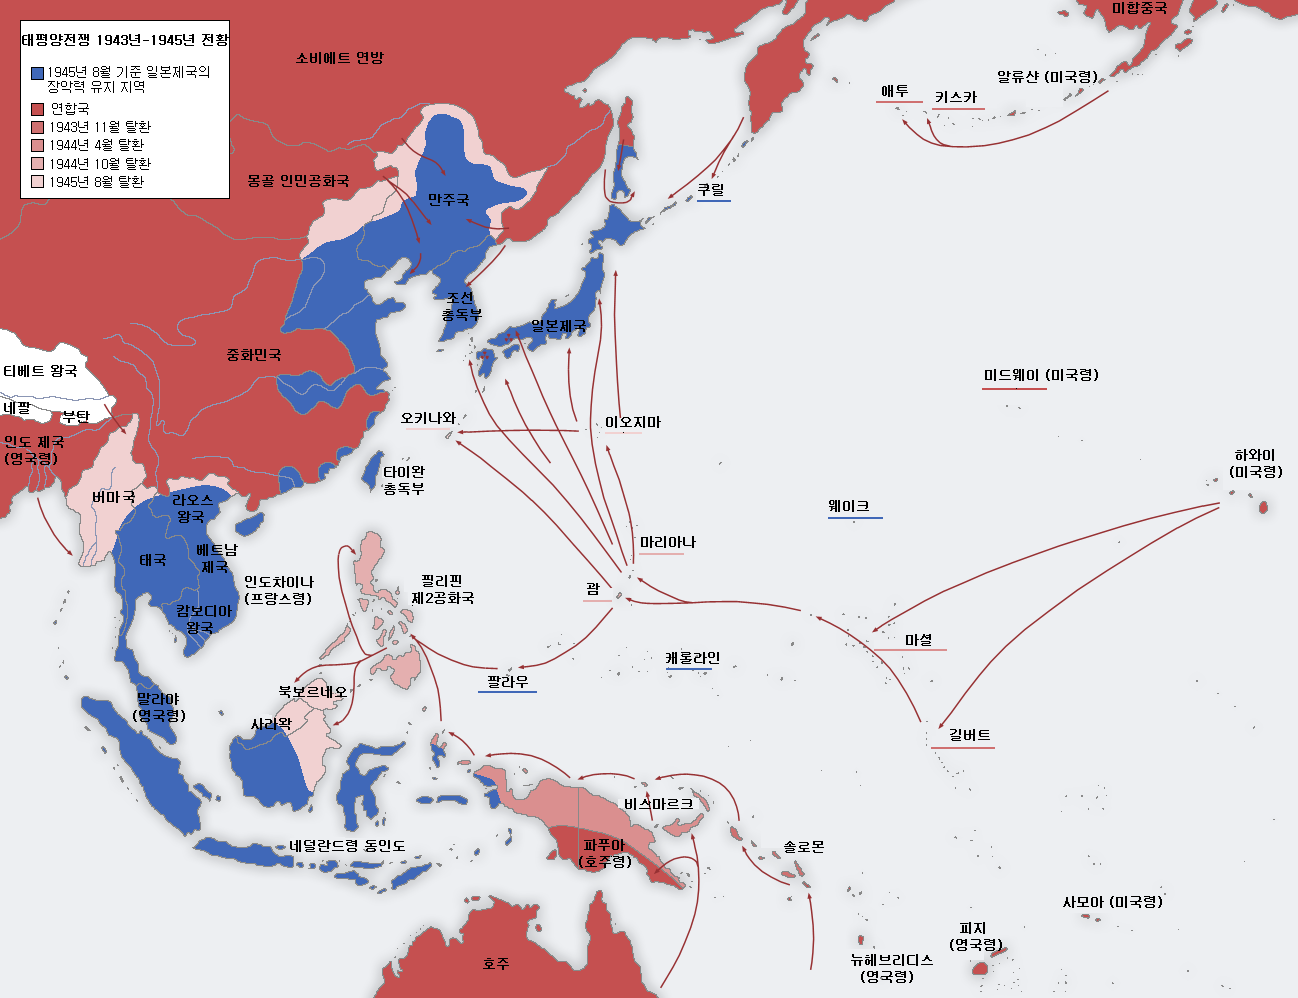 Filesecond world war asia 1943 1945 map koreang wikimedia filesecond world war asia 1943 1945 map koreang gumiabroncs Choice Image